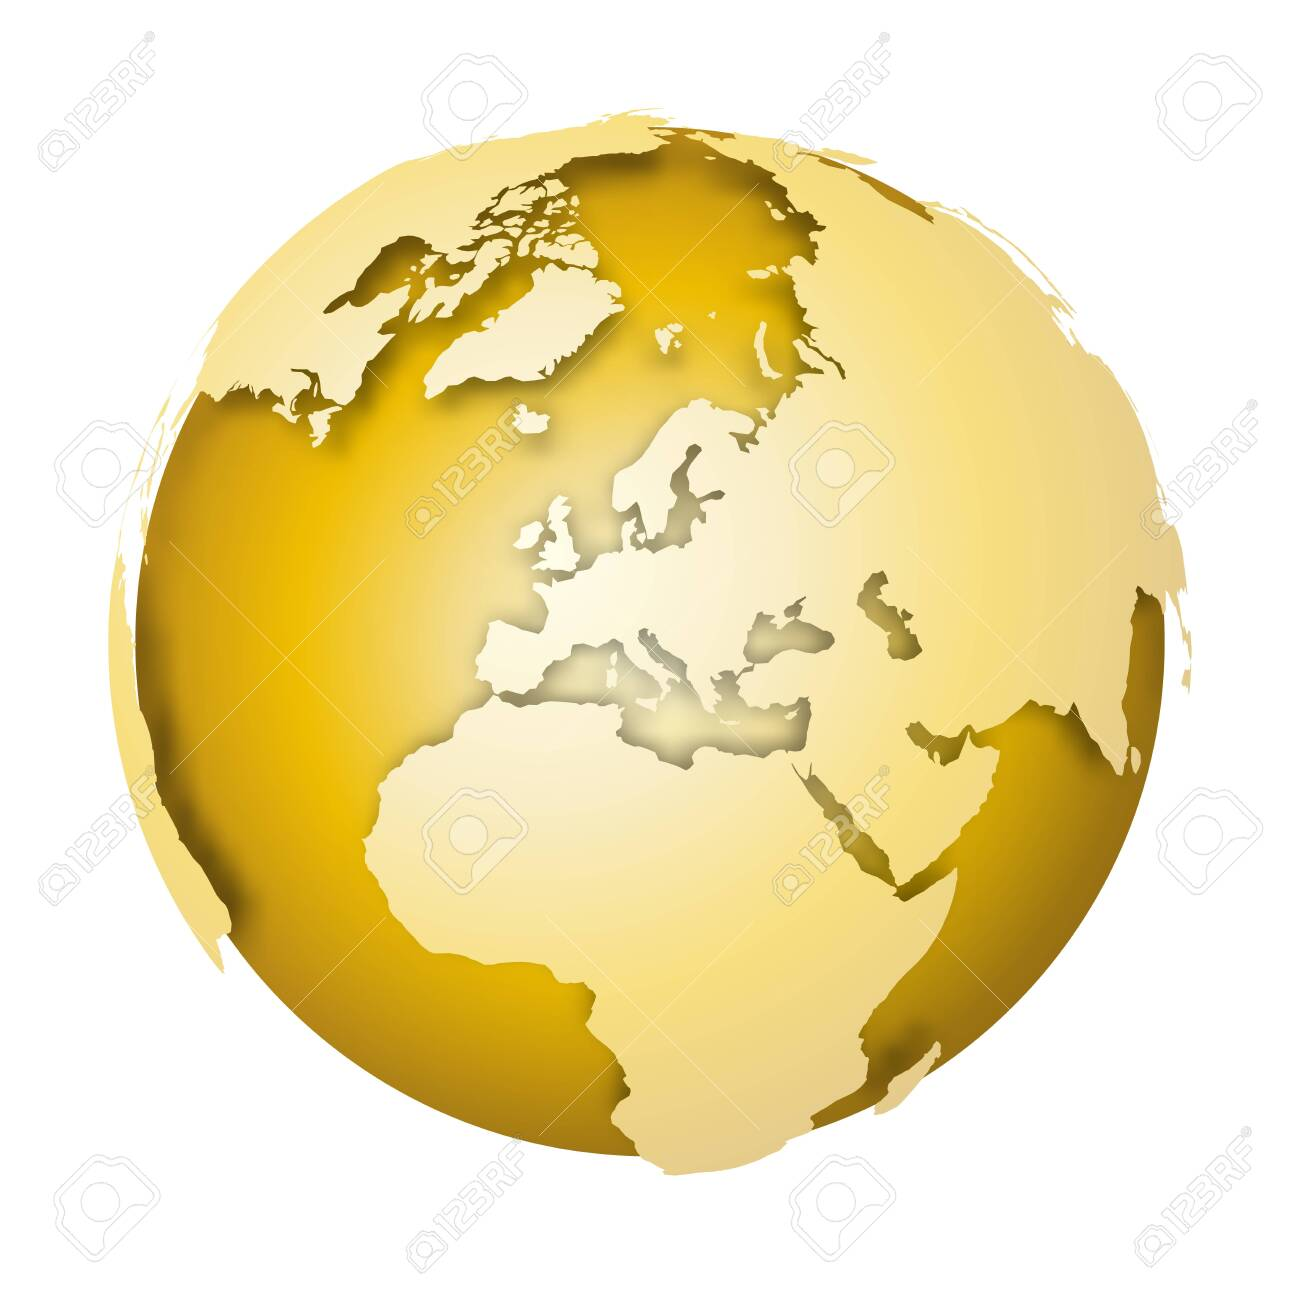 Earth globe. 3D world map with metallic lands dropping shadows on gold surface. Vector illustration. - 143036147